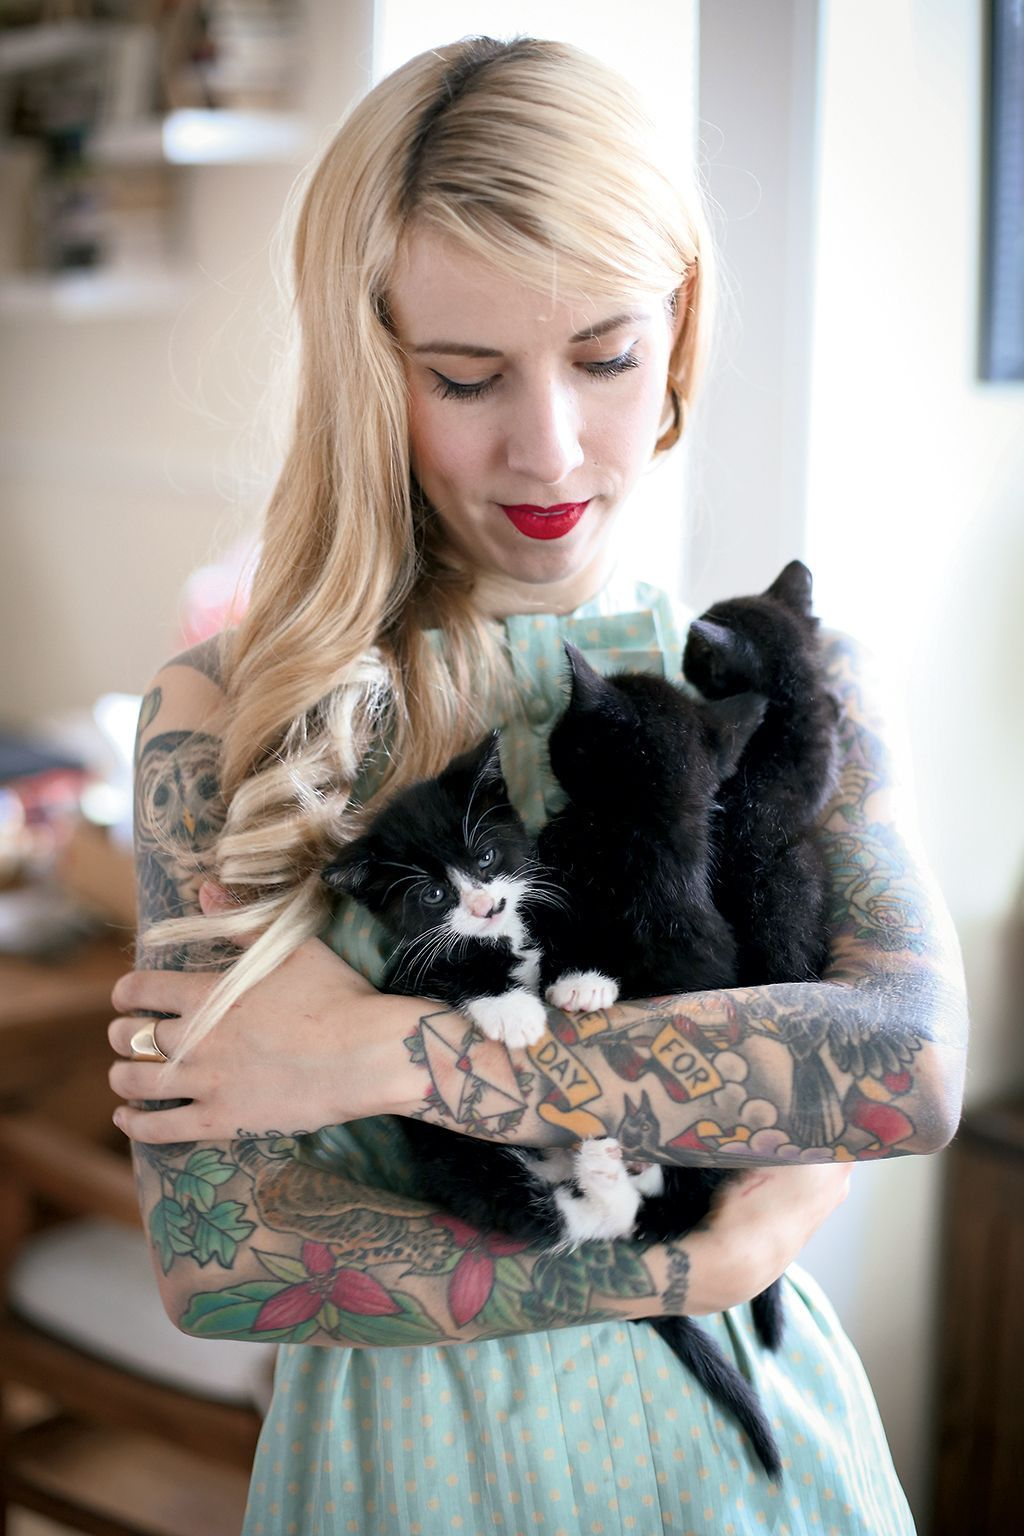 The Kitten Lady S Instagram Will Lure You In With Cuteness Kitten Cute Cats And Kittens Kittens Cutest